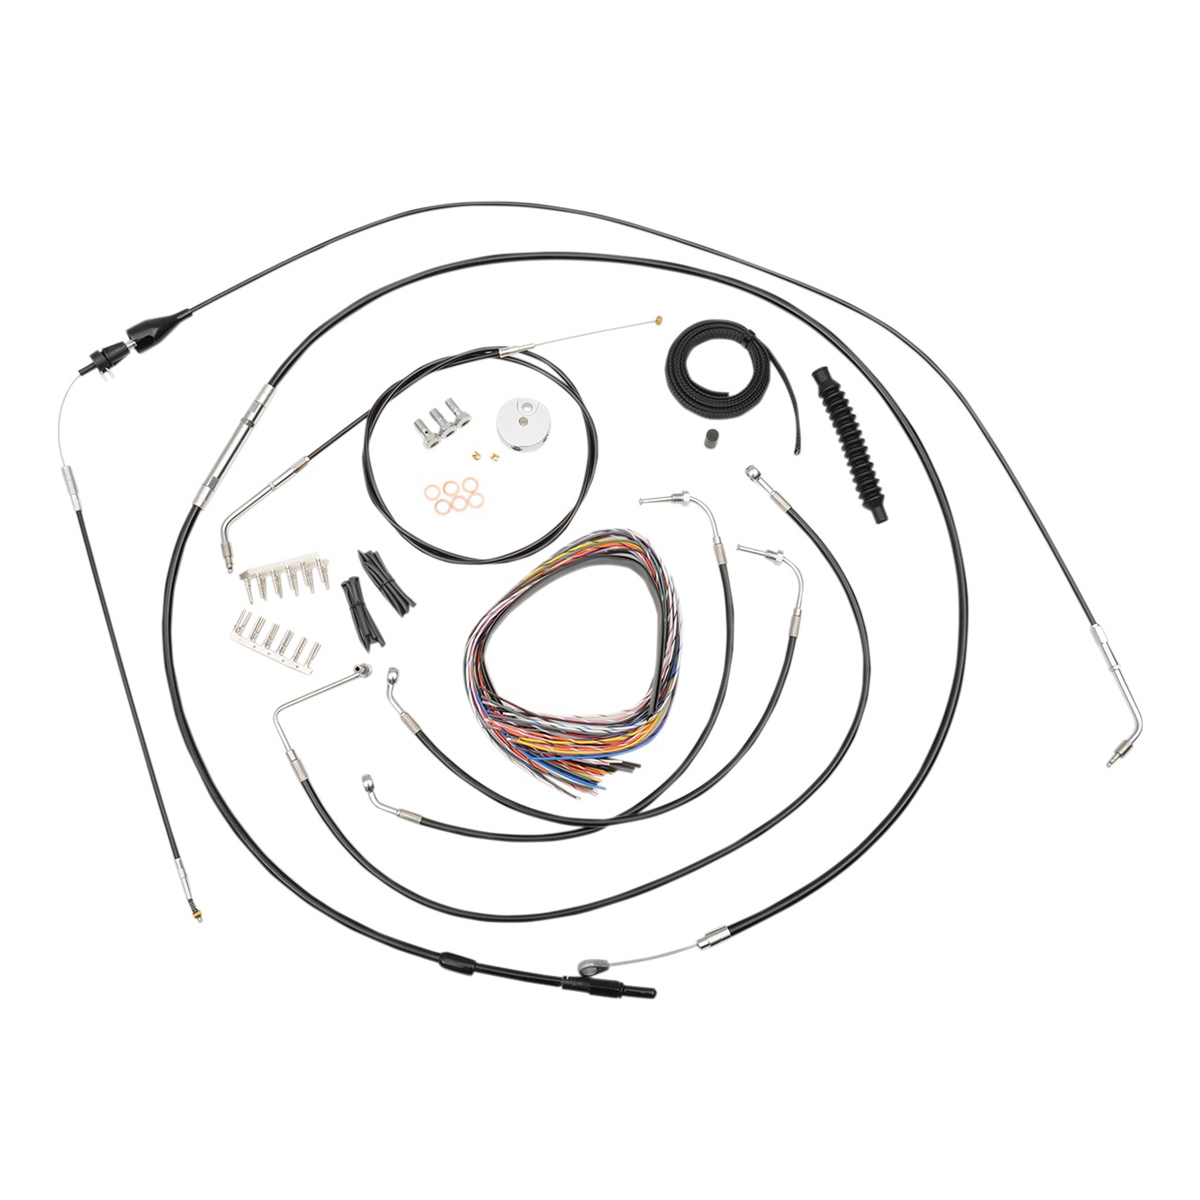 LA Choppers Handlebar Wiring Extension Kit for 1996-2006 Harley Touring Models